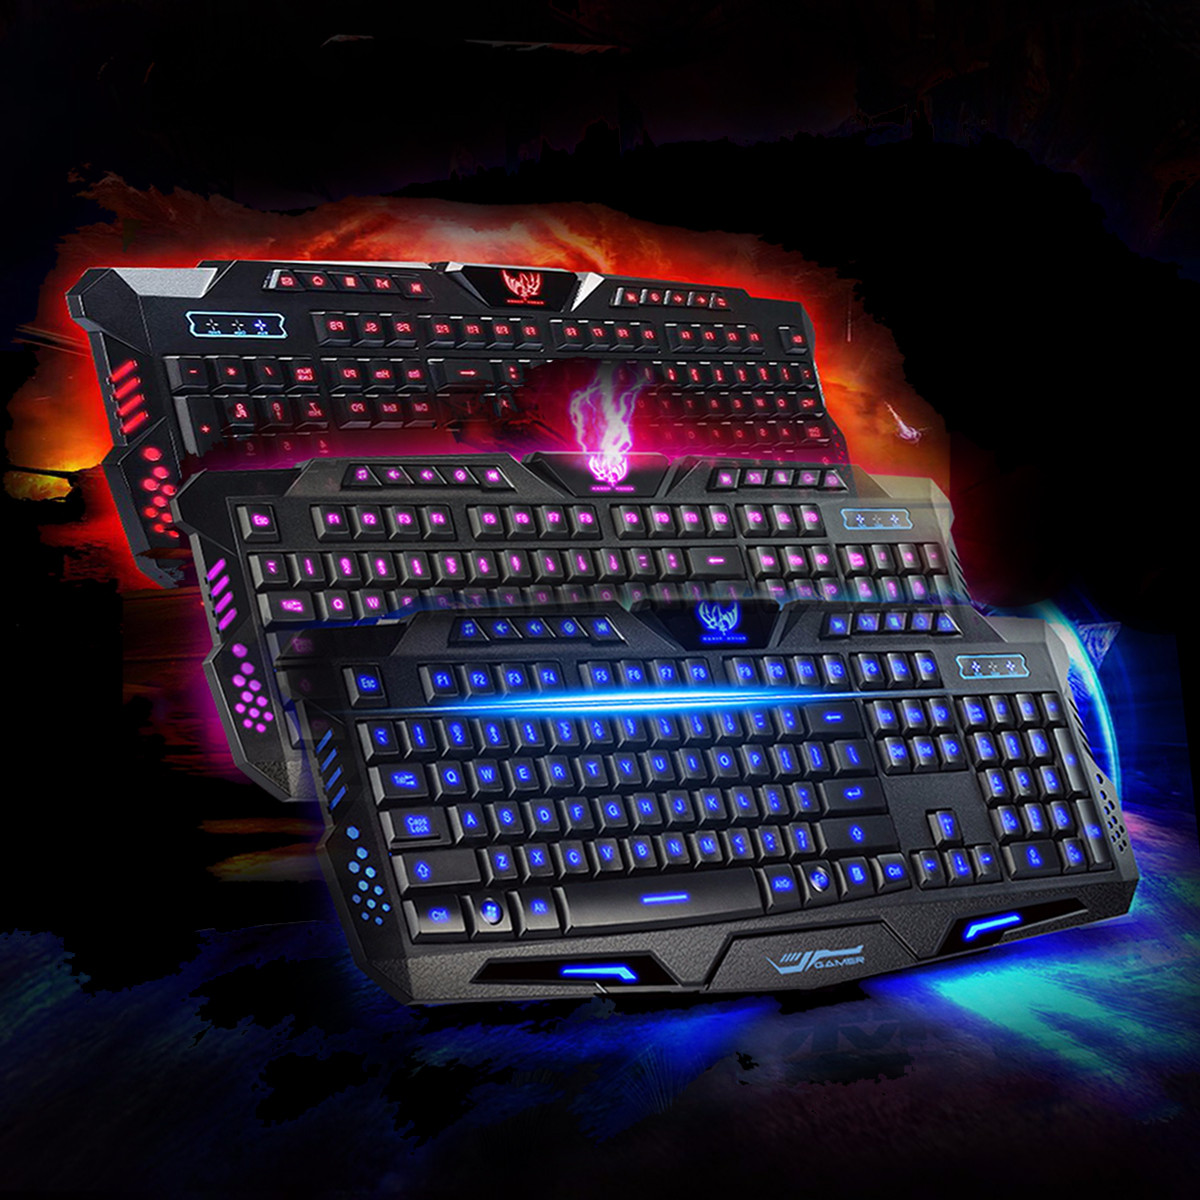 USB Wired 3 Colors gamingkeyboard Crack Illuminated LED Backlight Multimedia PC Gaming Keyboard